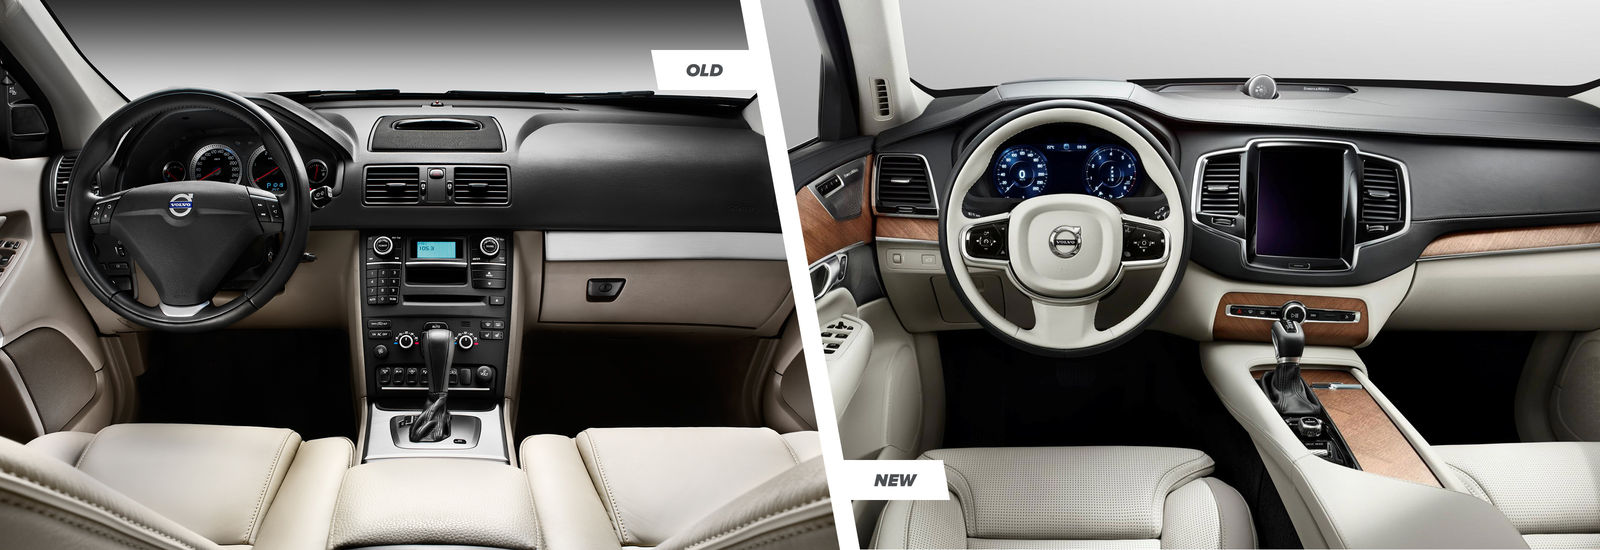 2015 Volvo Xc90 Old Vs New Side By Side Comparison Carwow